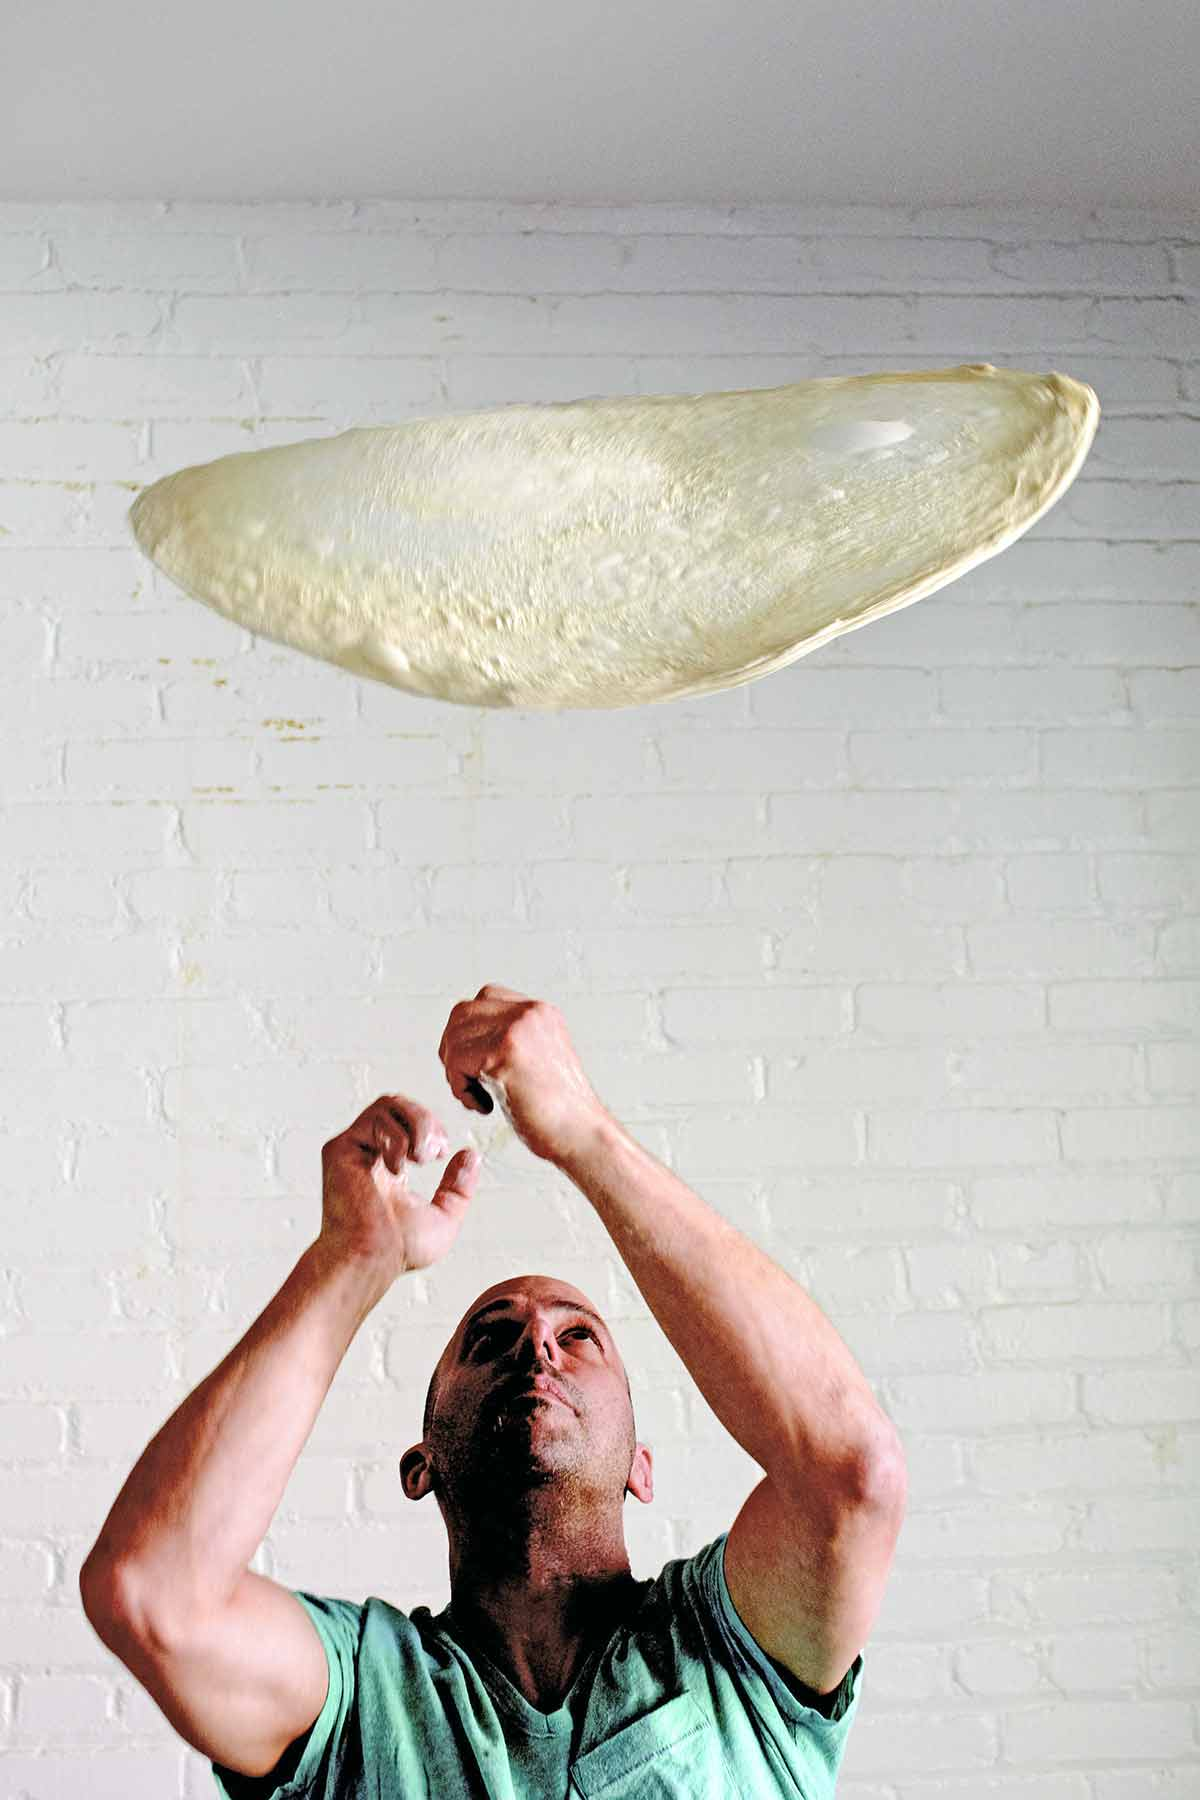 A thin circle of stretched pizza dough being tossed in the air.